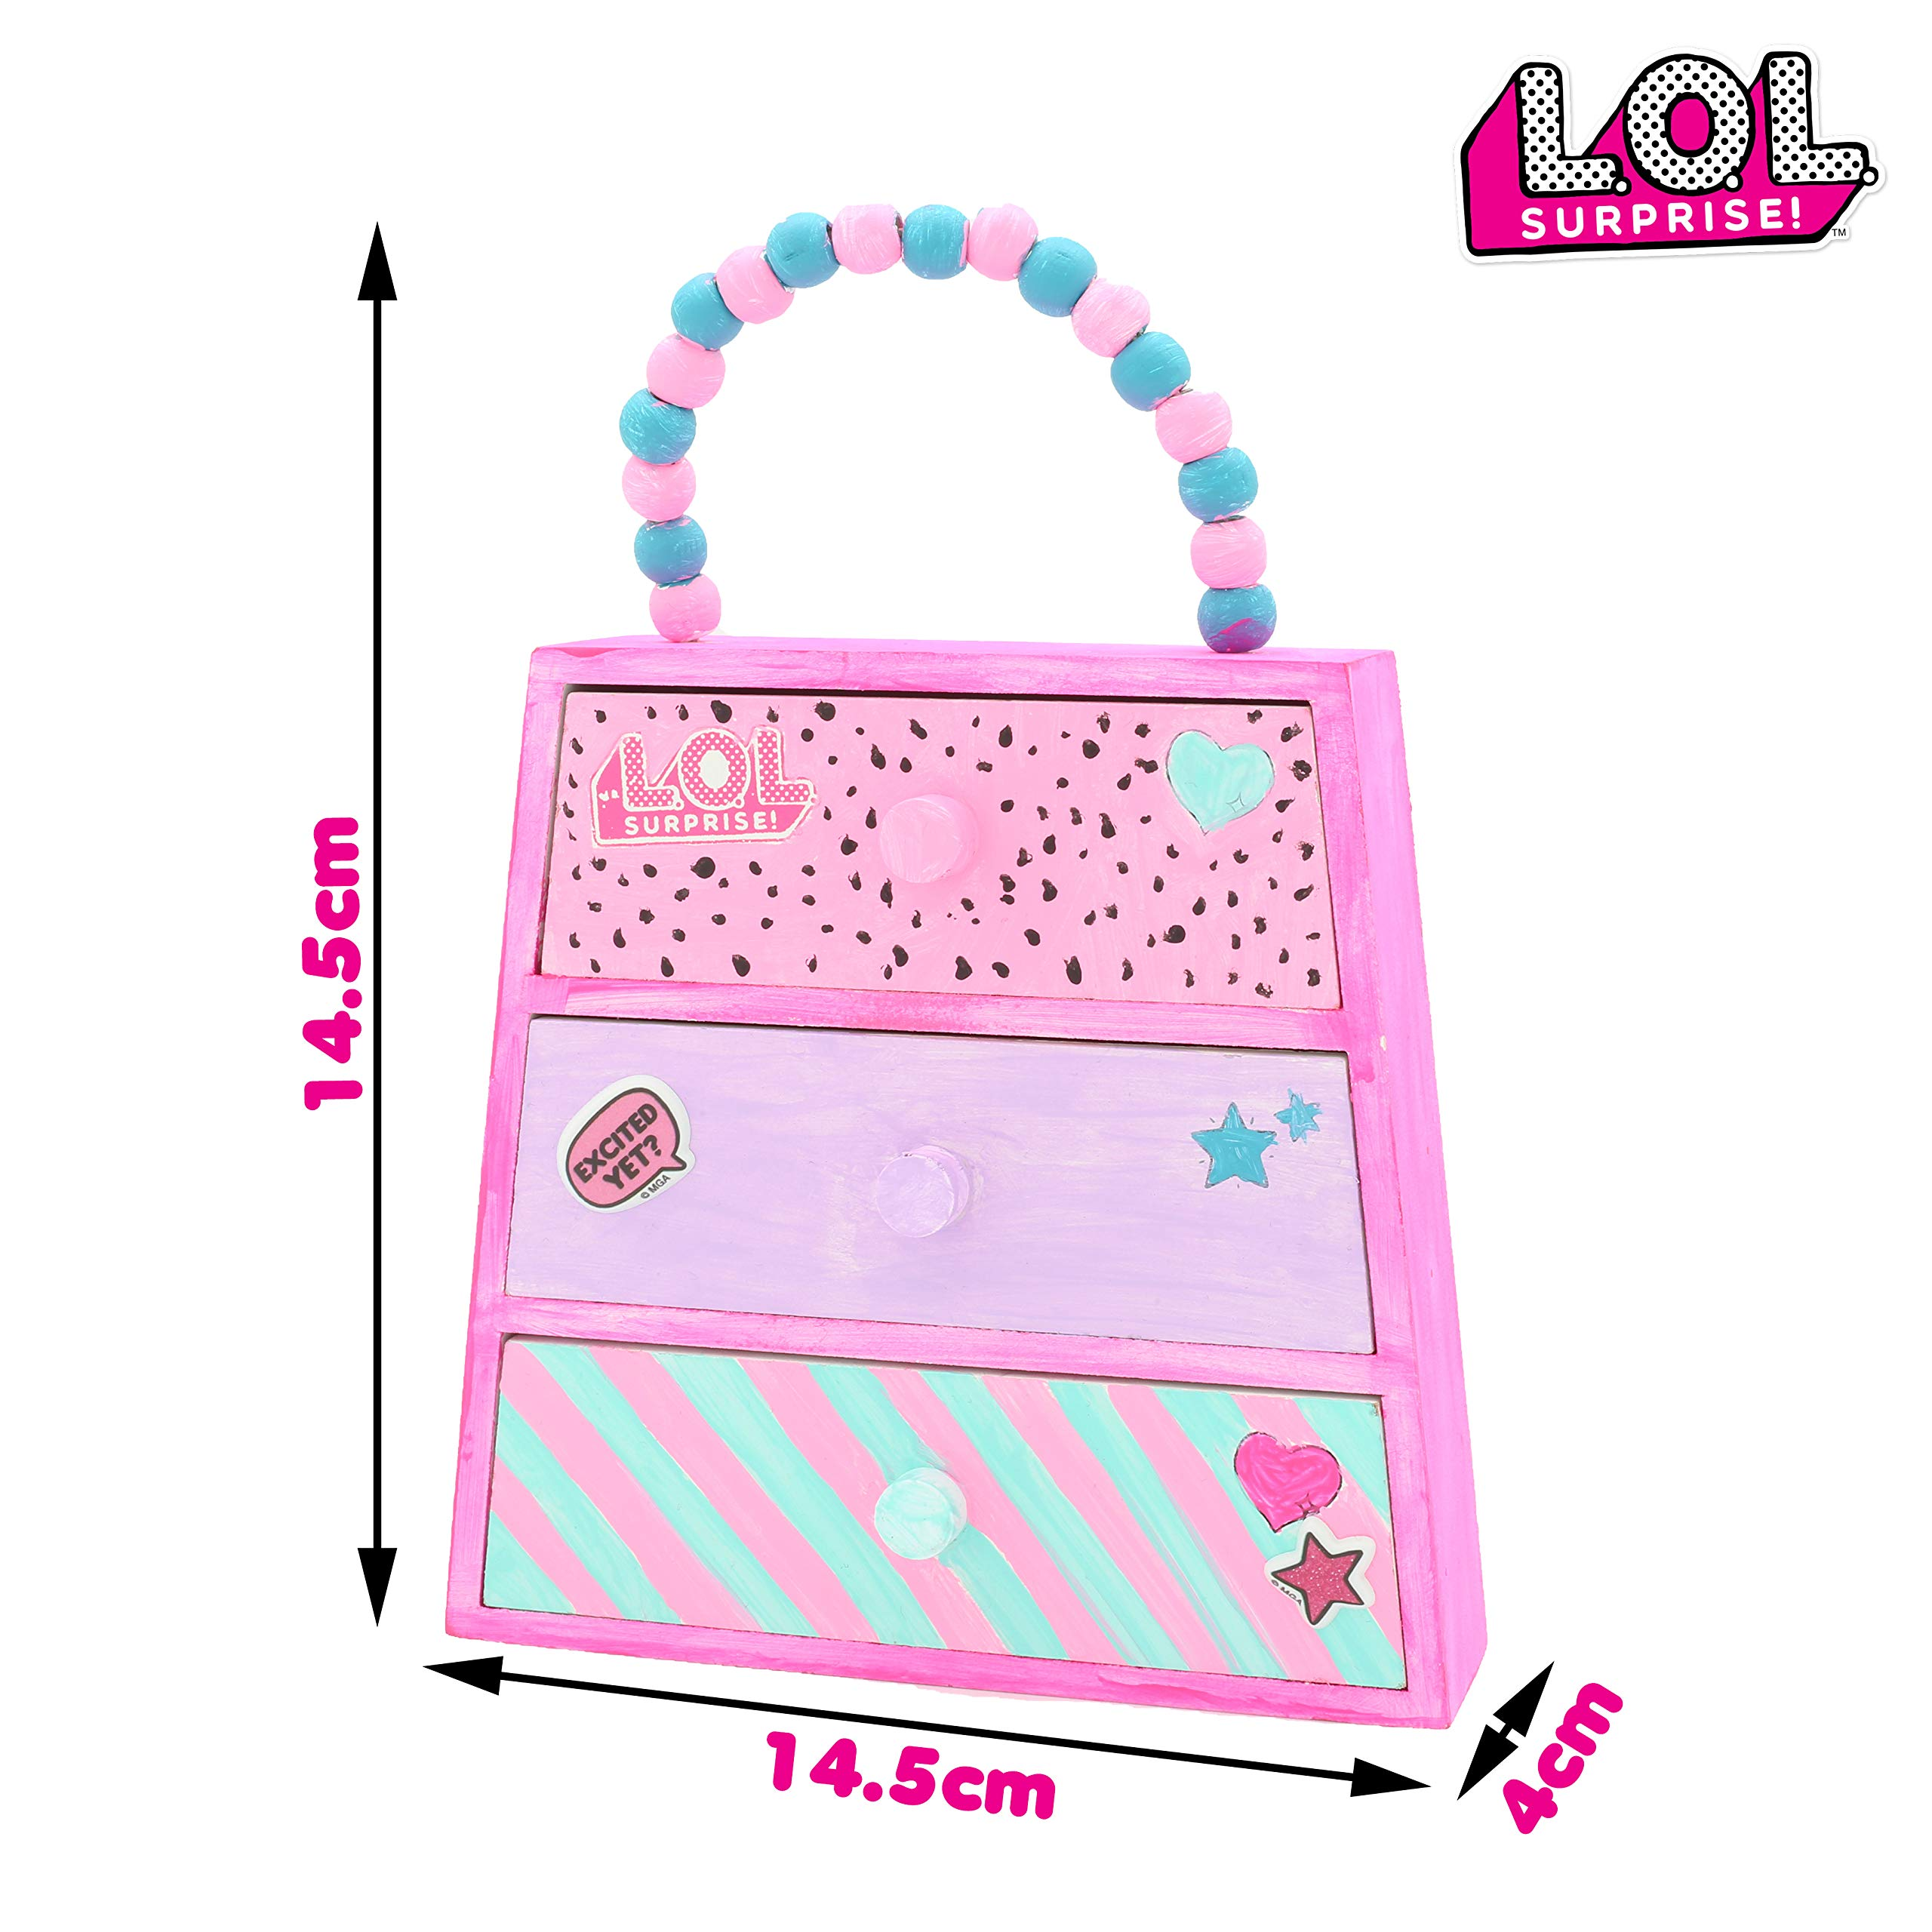 L.O.L. Surprise! Create Your Own Surprise Jewellery Chest Jewellery Box LOL Surprise Dolls Gifts